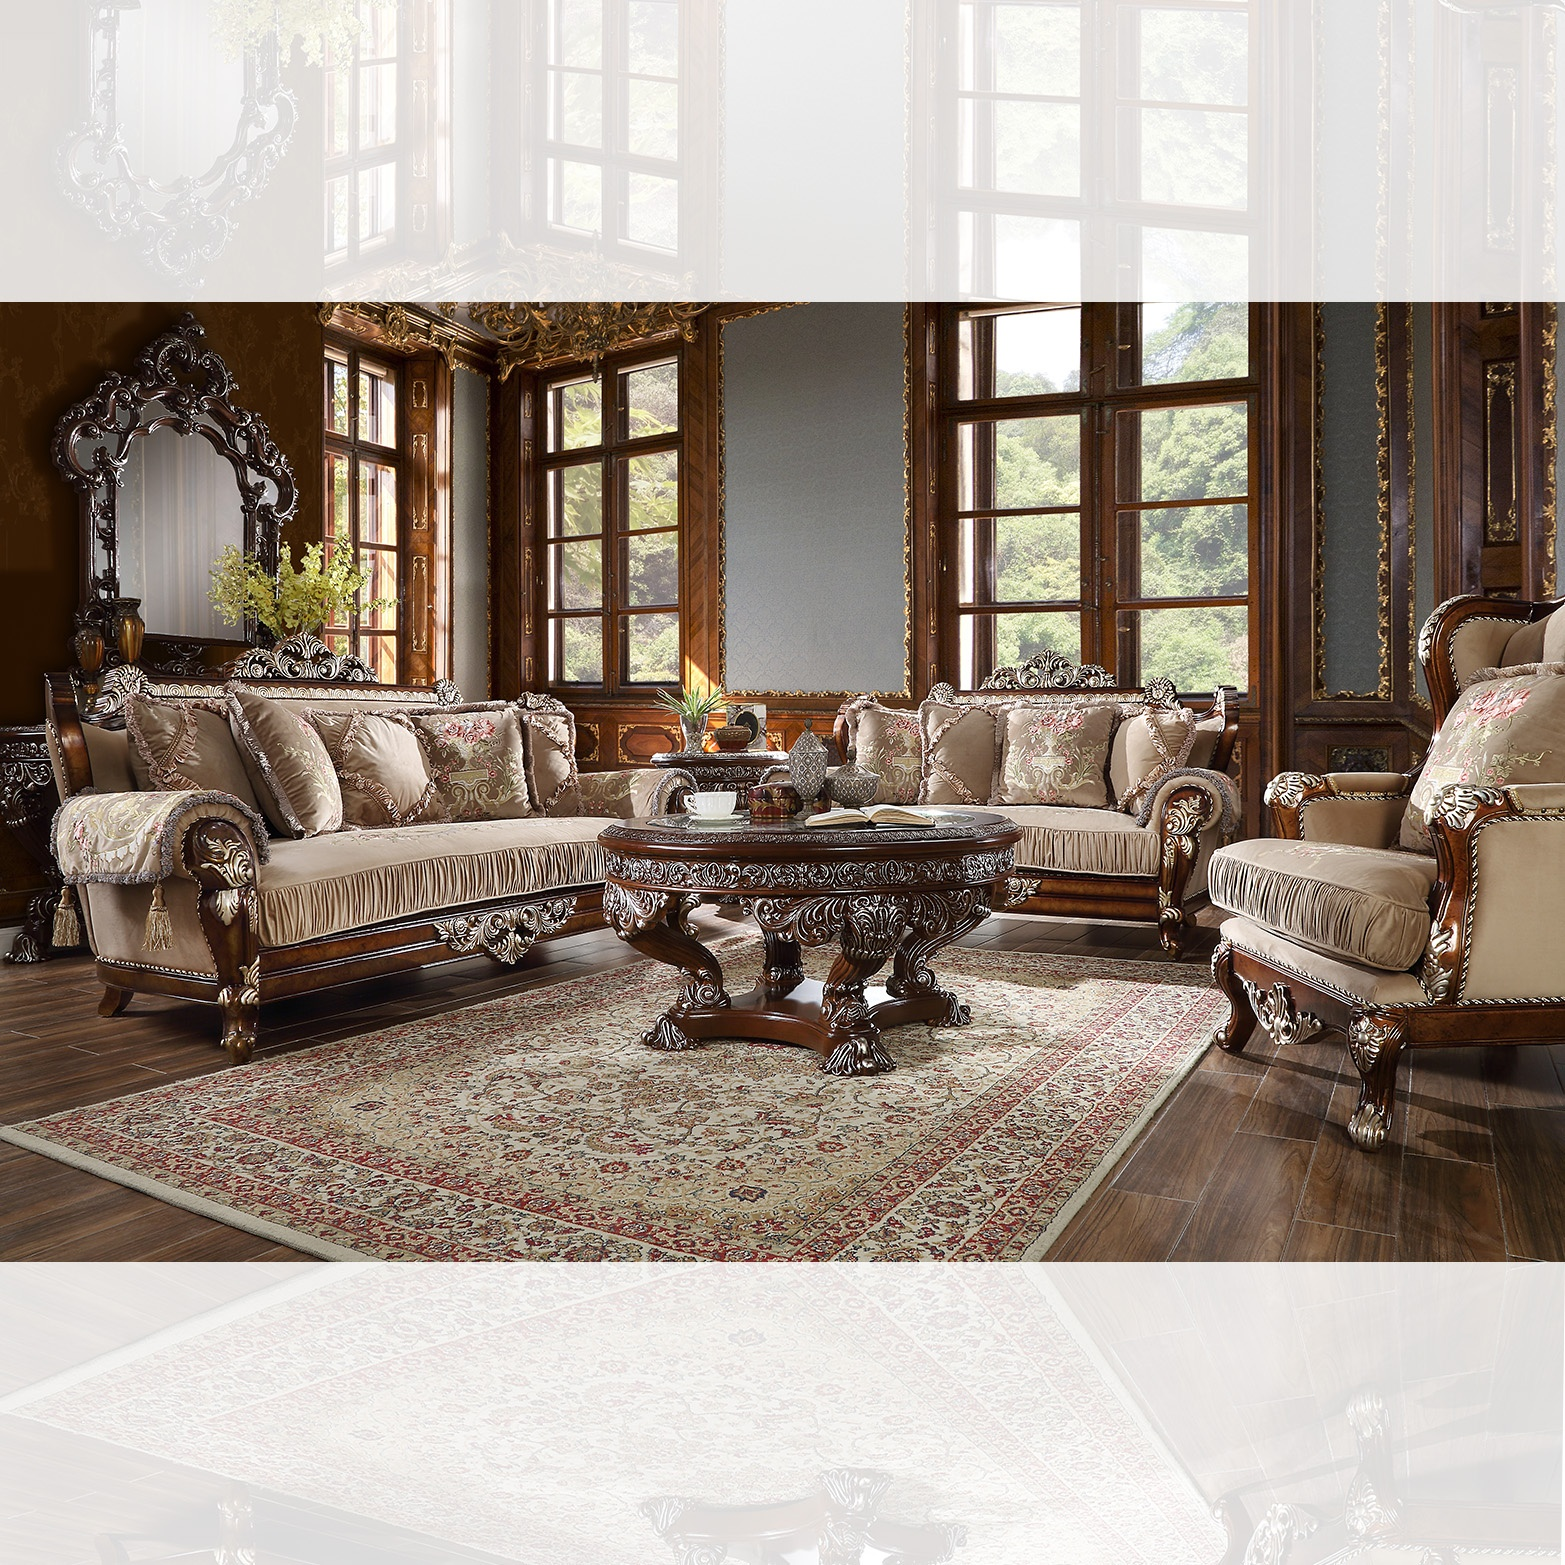 Traditional Living Room Set 3 PCS in Brown Fabric Traditional Style Homey Design HD-562